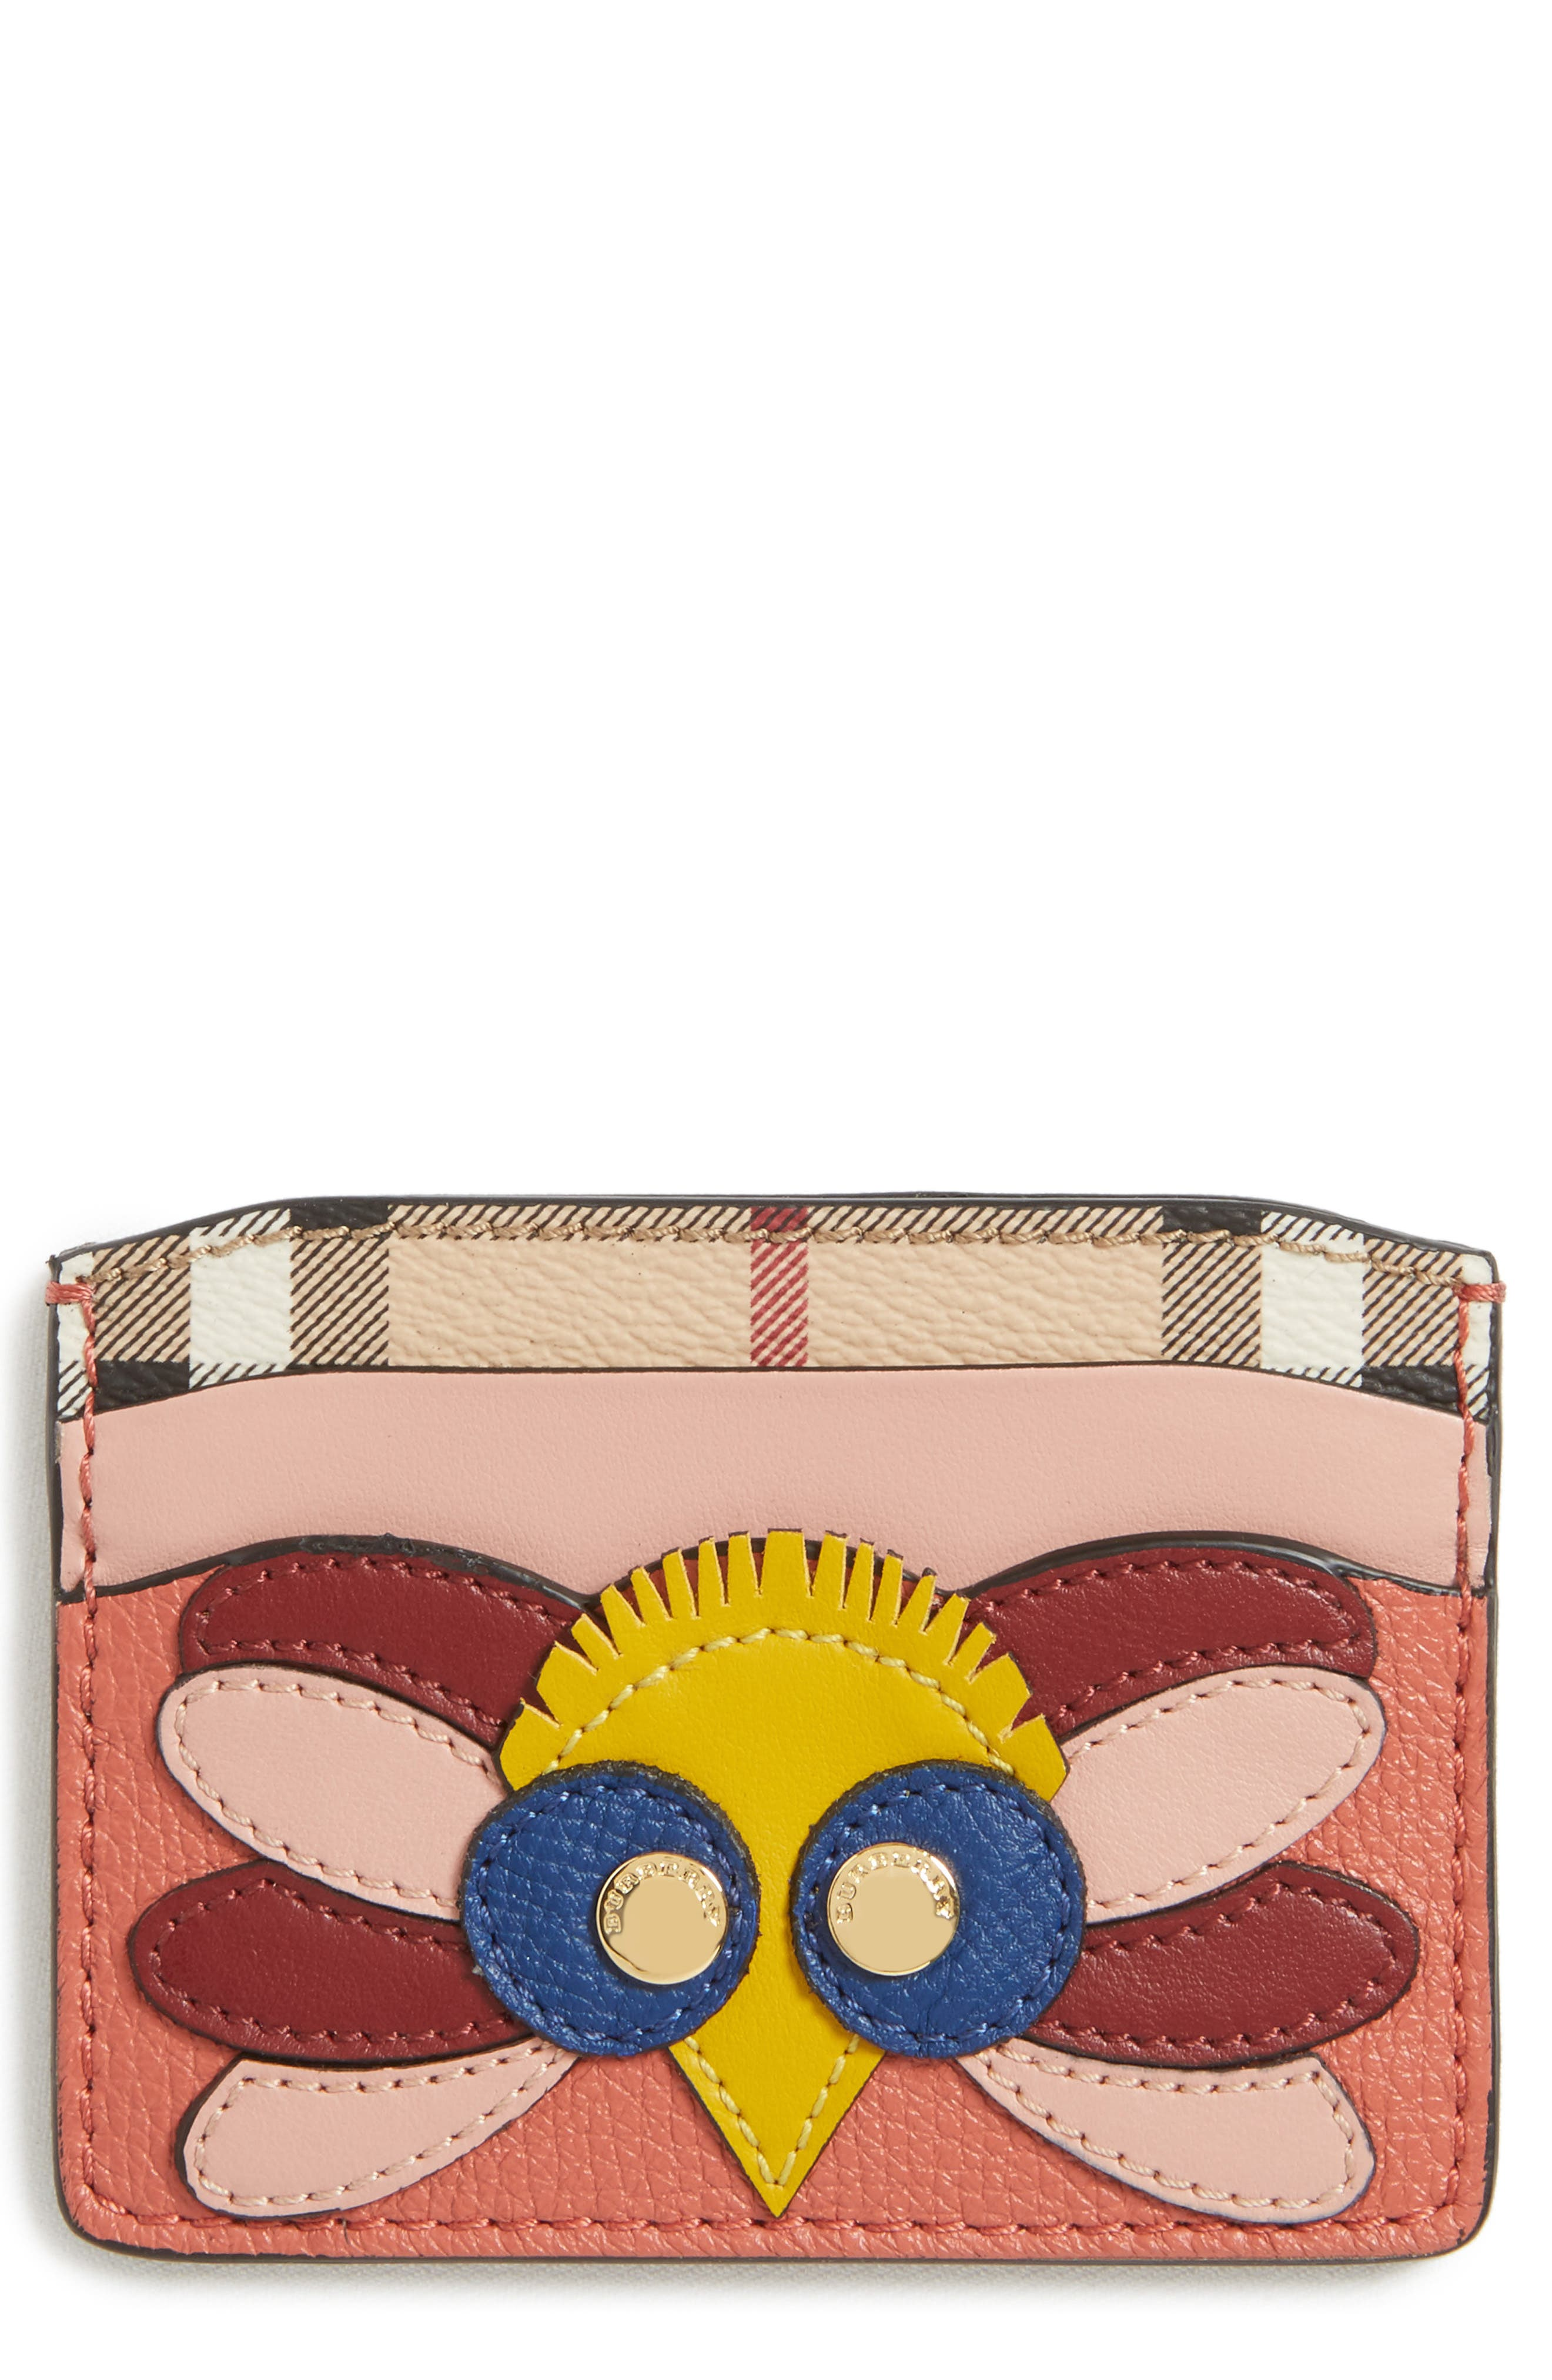 Burberry Izzy Beasts Owl Leather Card Case